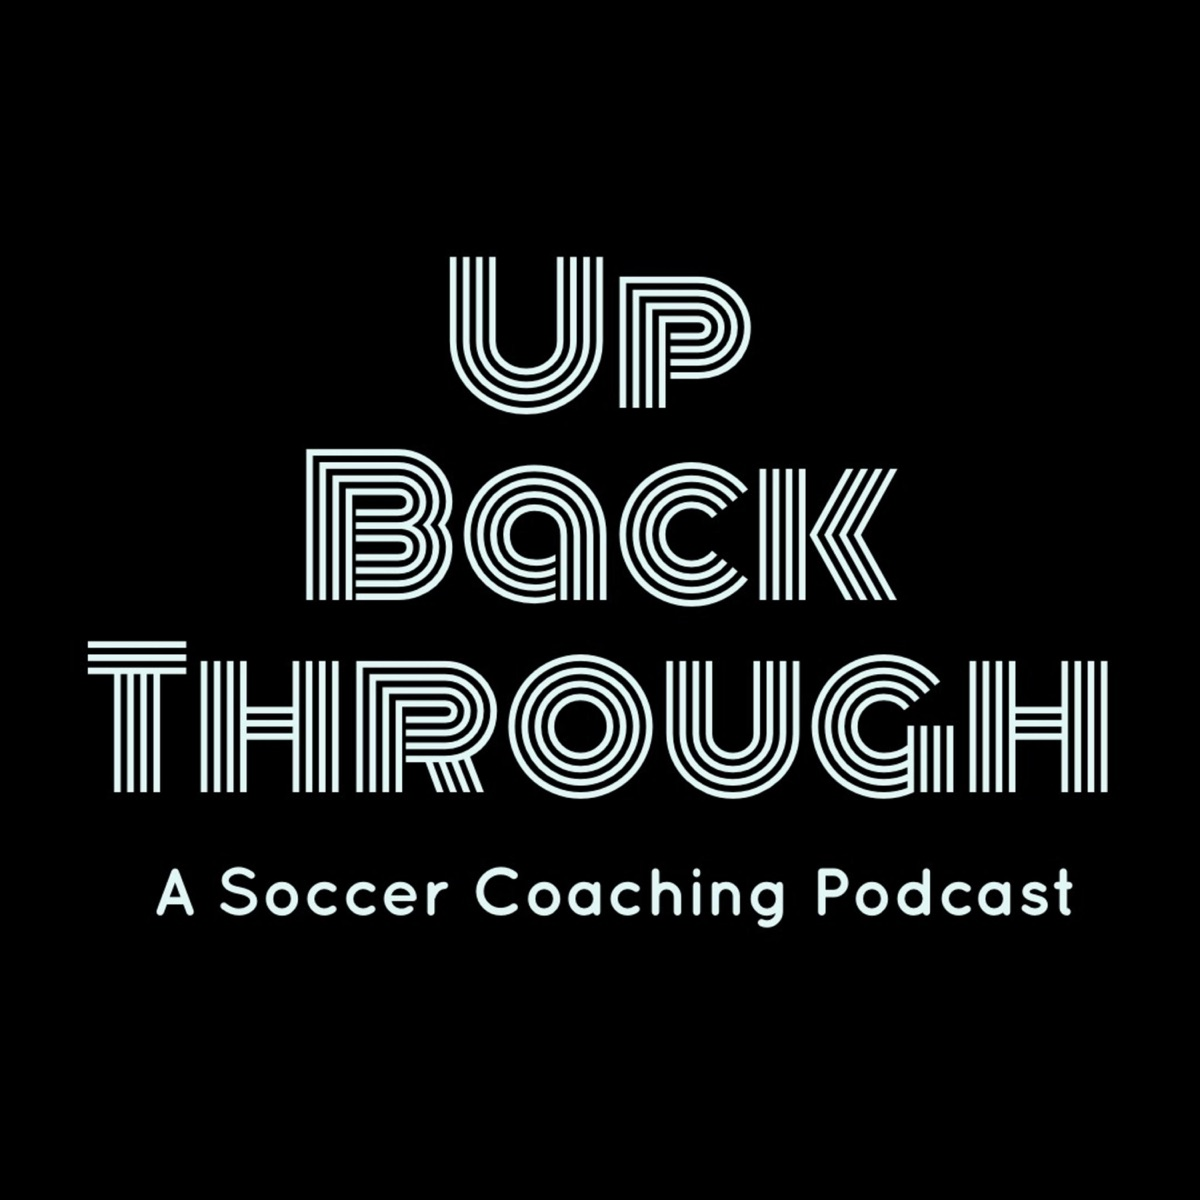 Up Back Through: A Soccer Coaching Podcast